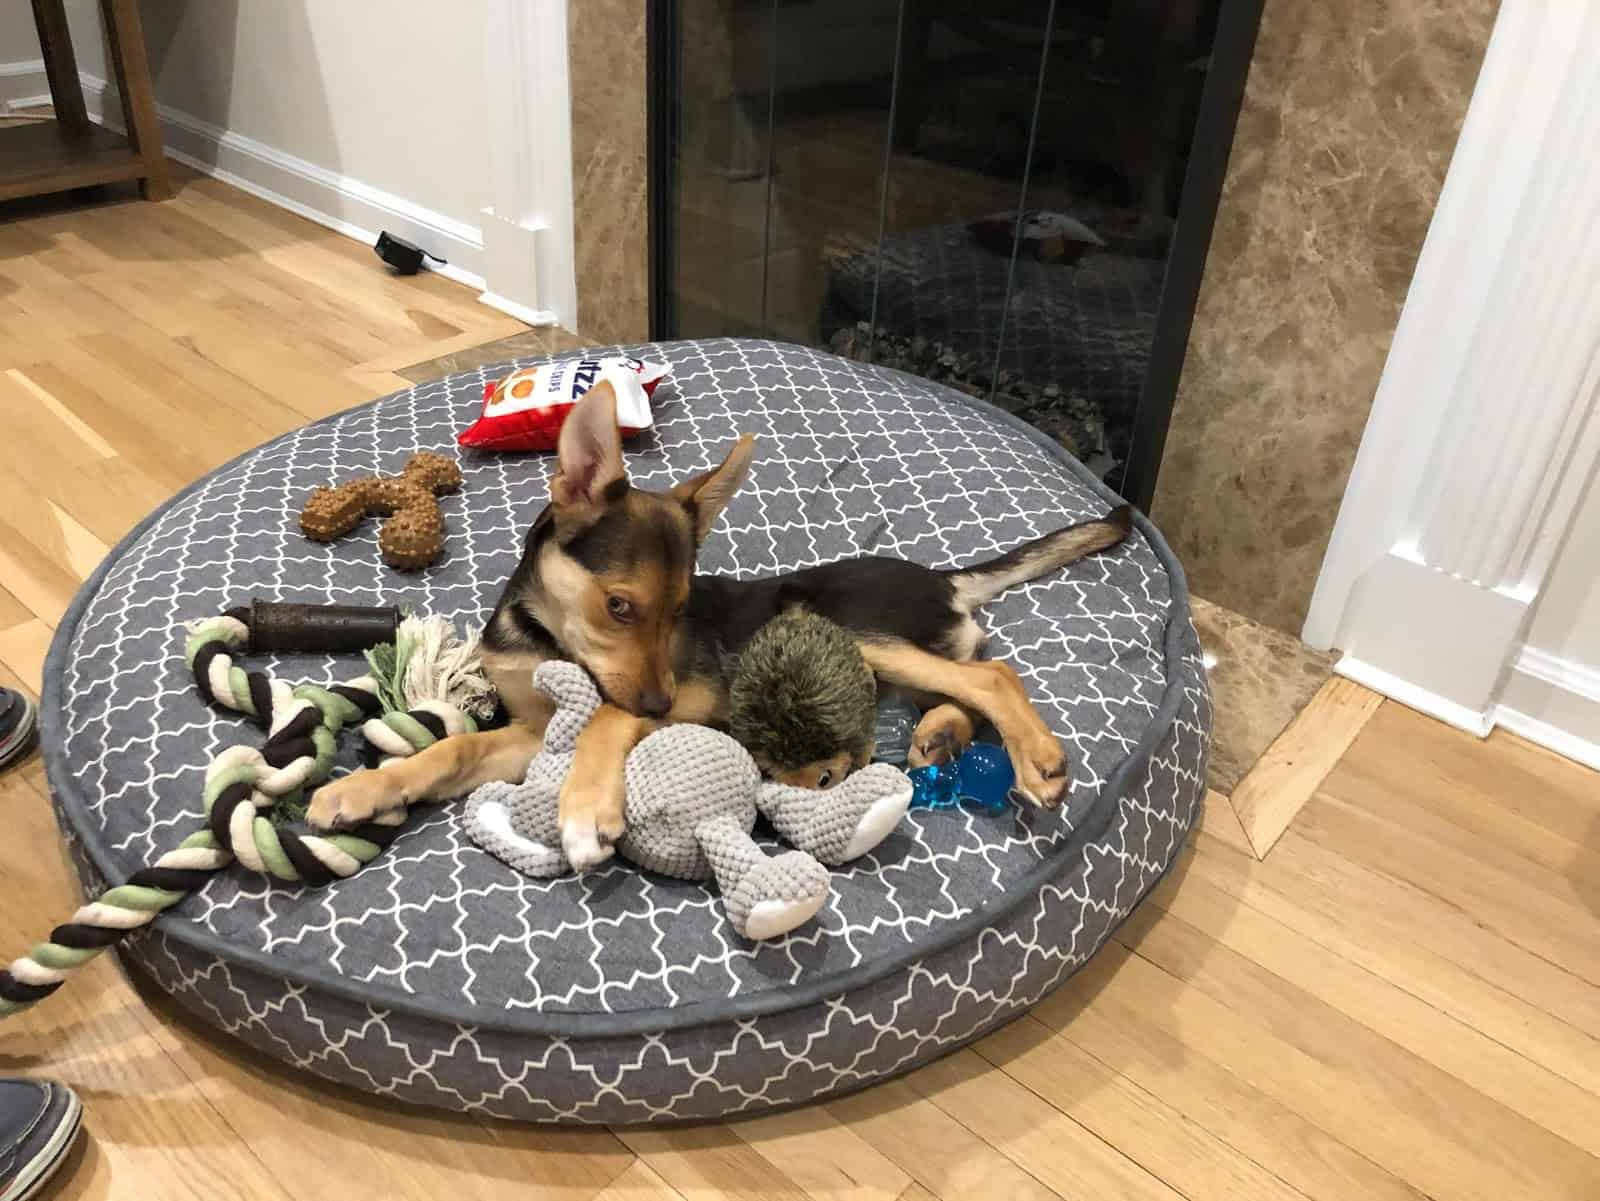 Dog lying on dog bed displaying possesive behavior with toys.